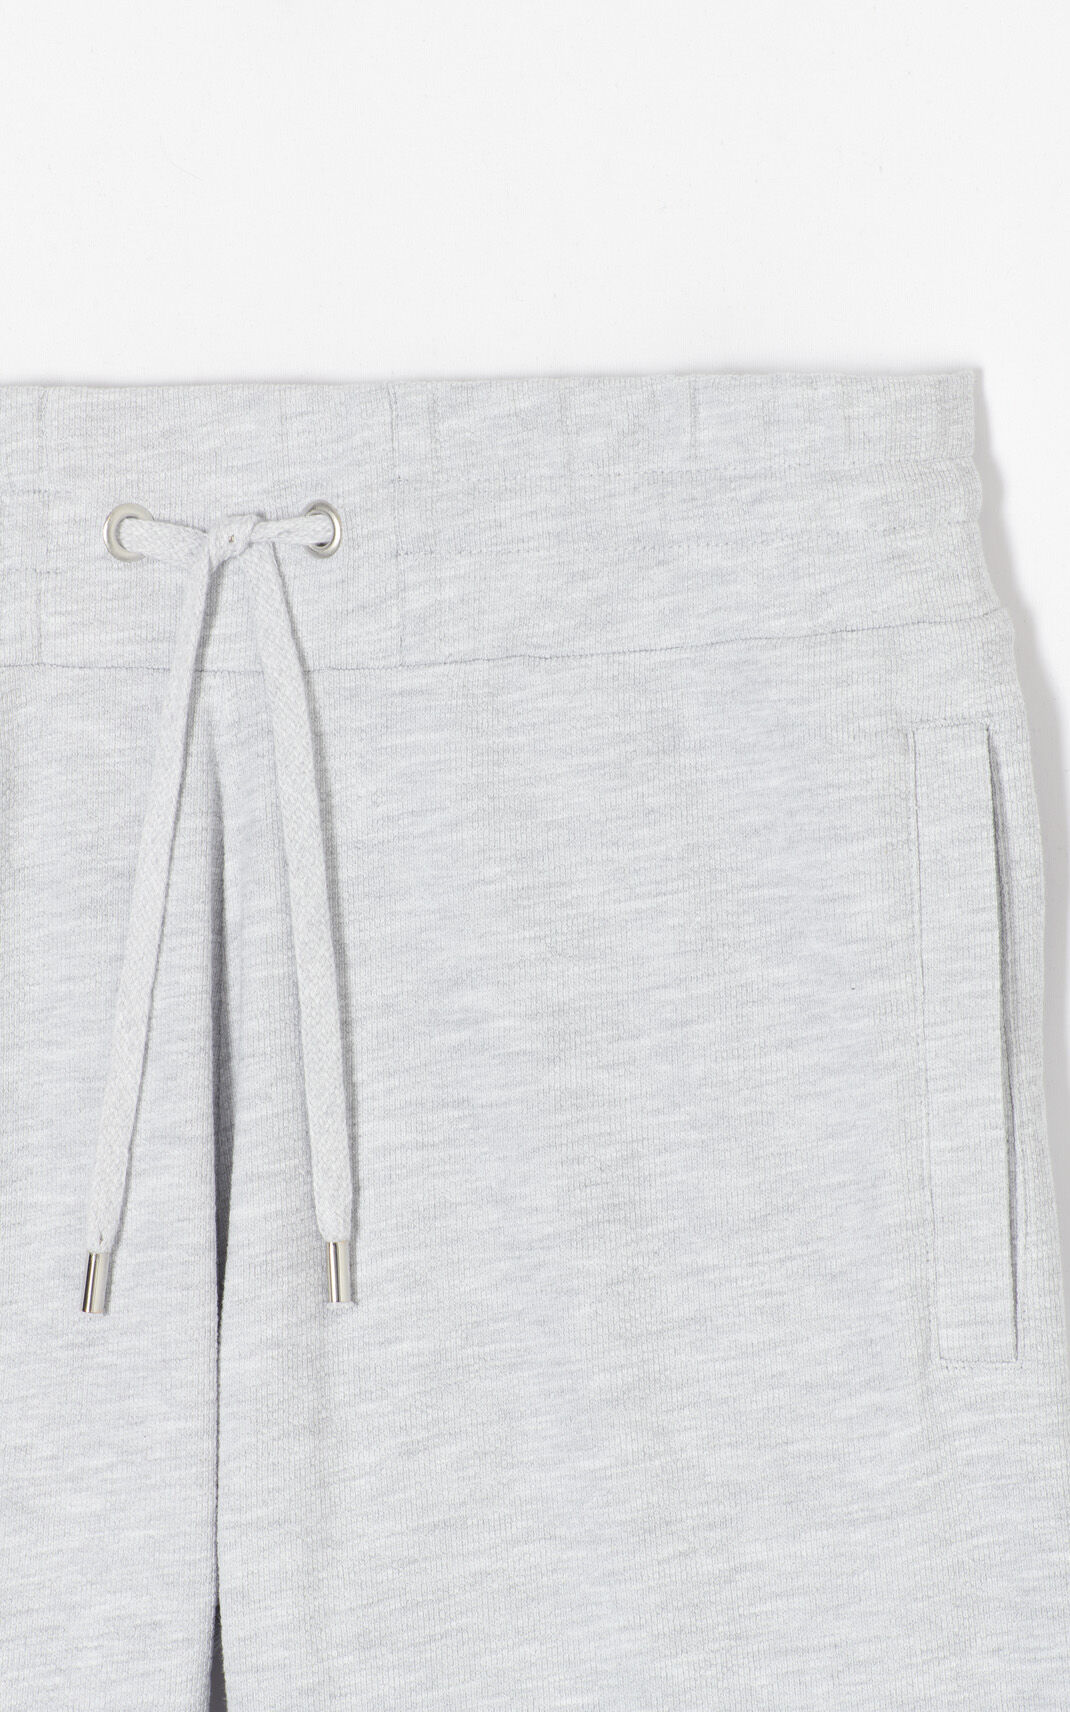 PALE GREY 'High Summer Capsule Collection' KENZO Logo shorts for women